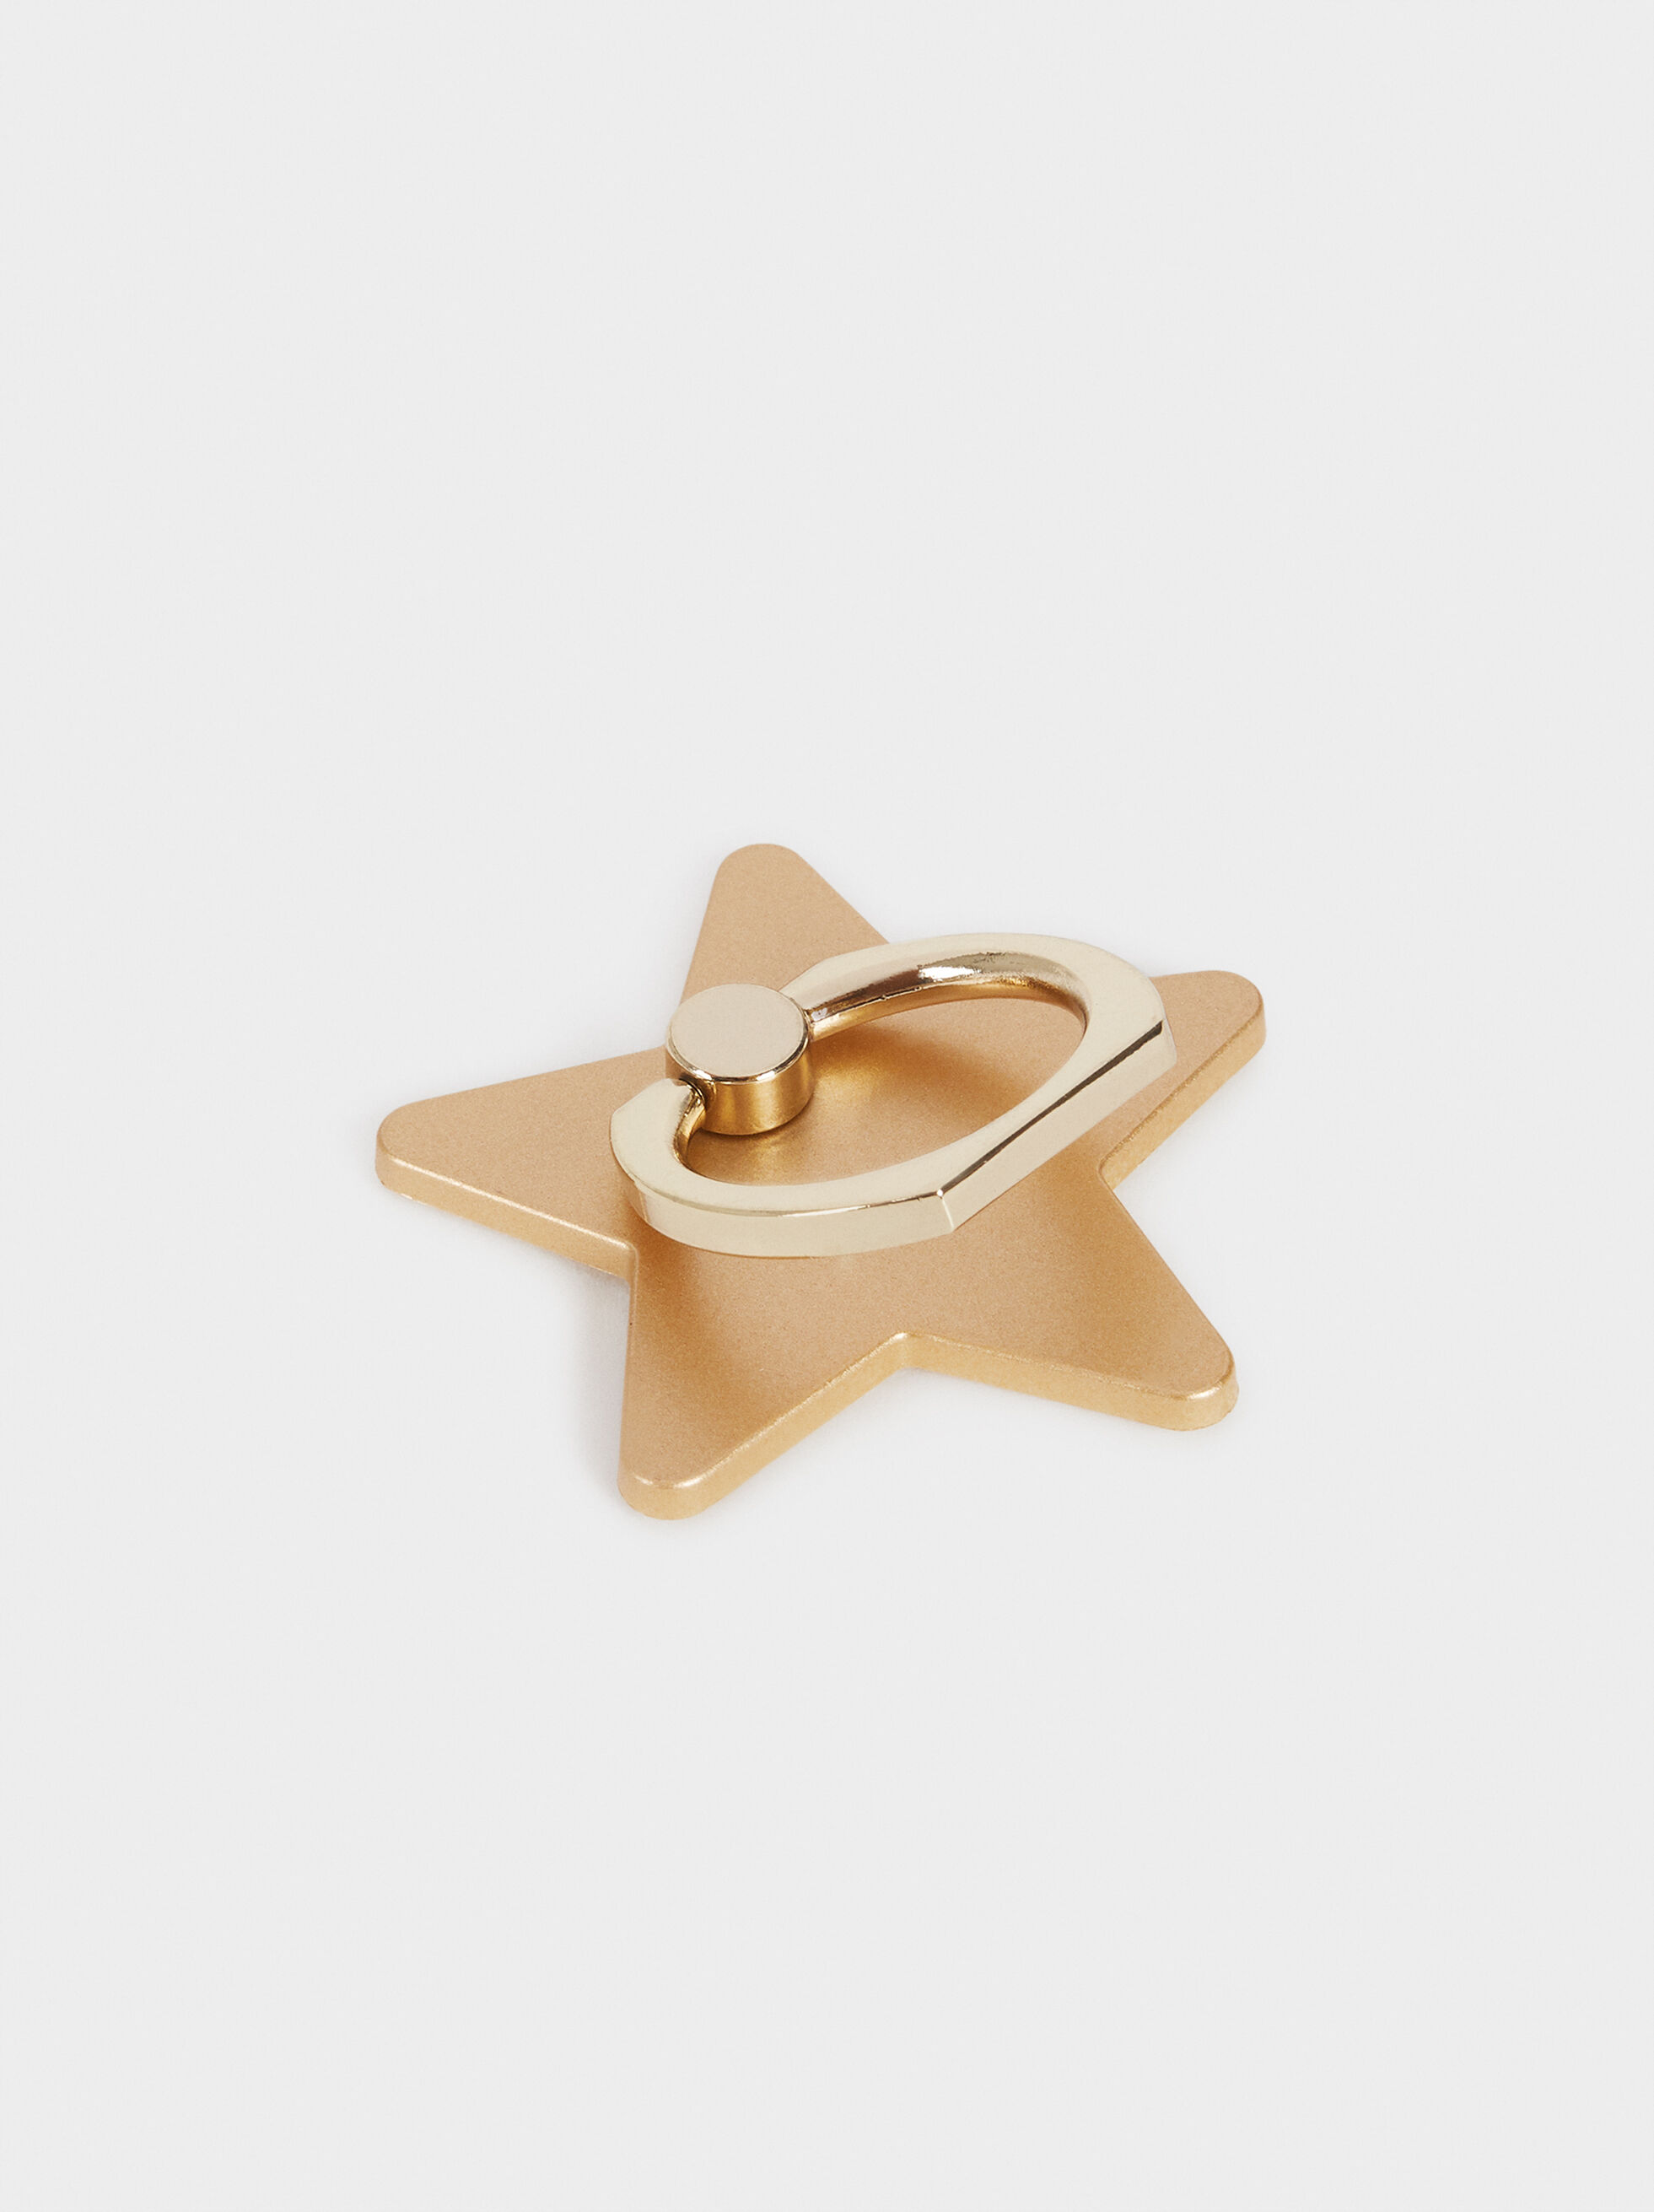 Mobile Phone Ring Stand, Golden, hi-res